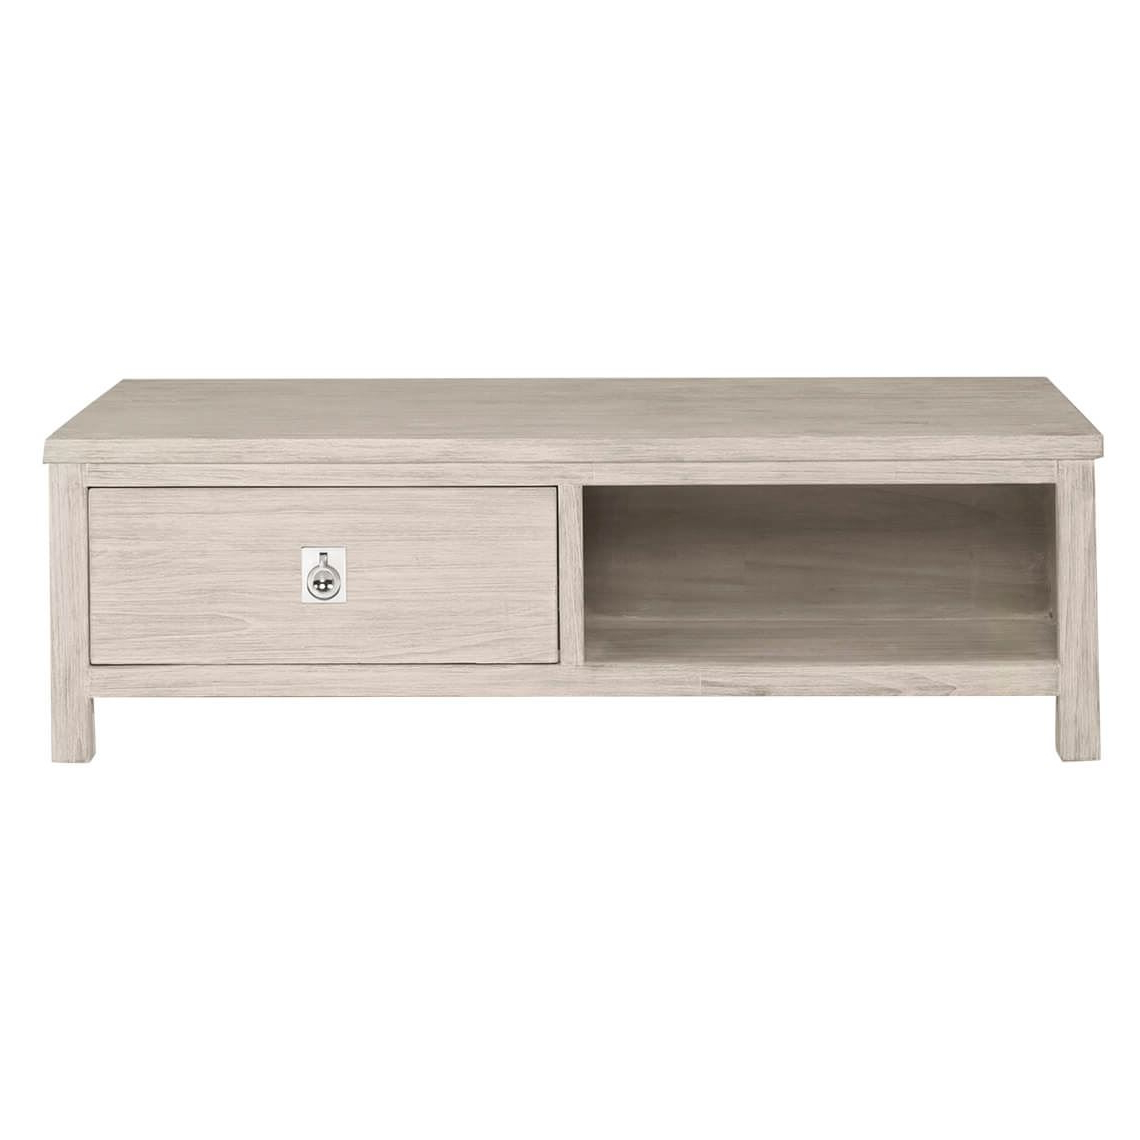 Freedom Inside 2019 White Wash 2 Drawer/1 Door Coffee Tables (View 8 of 20)